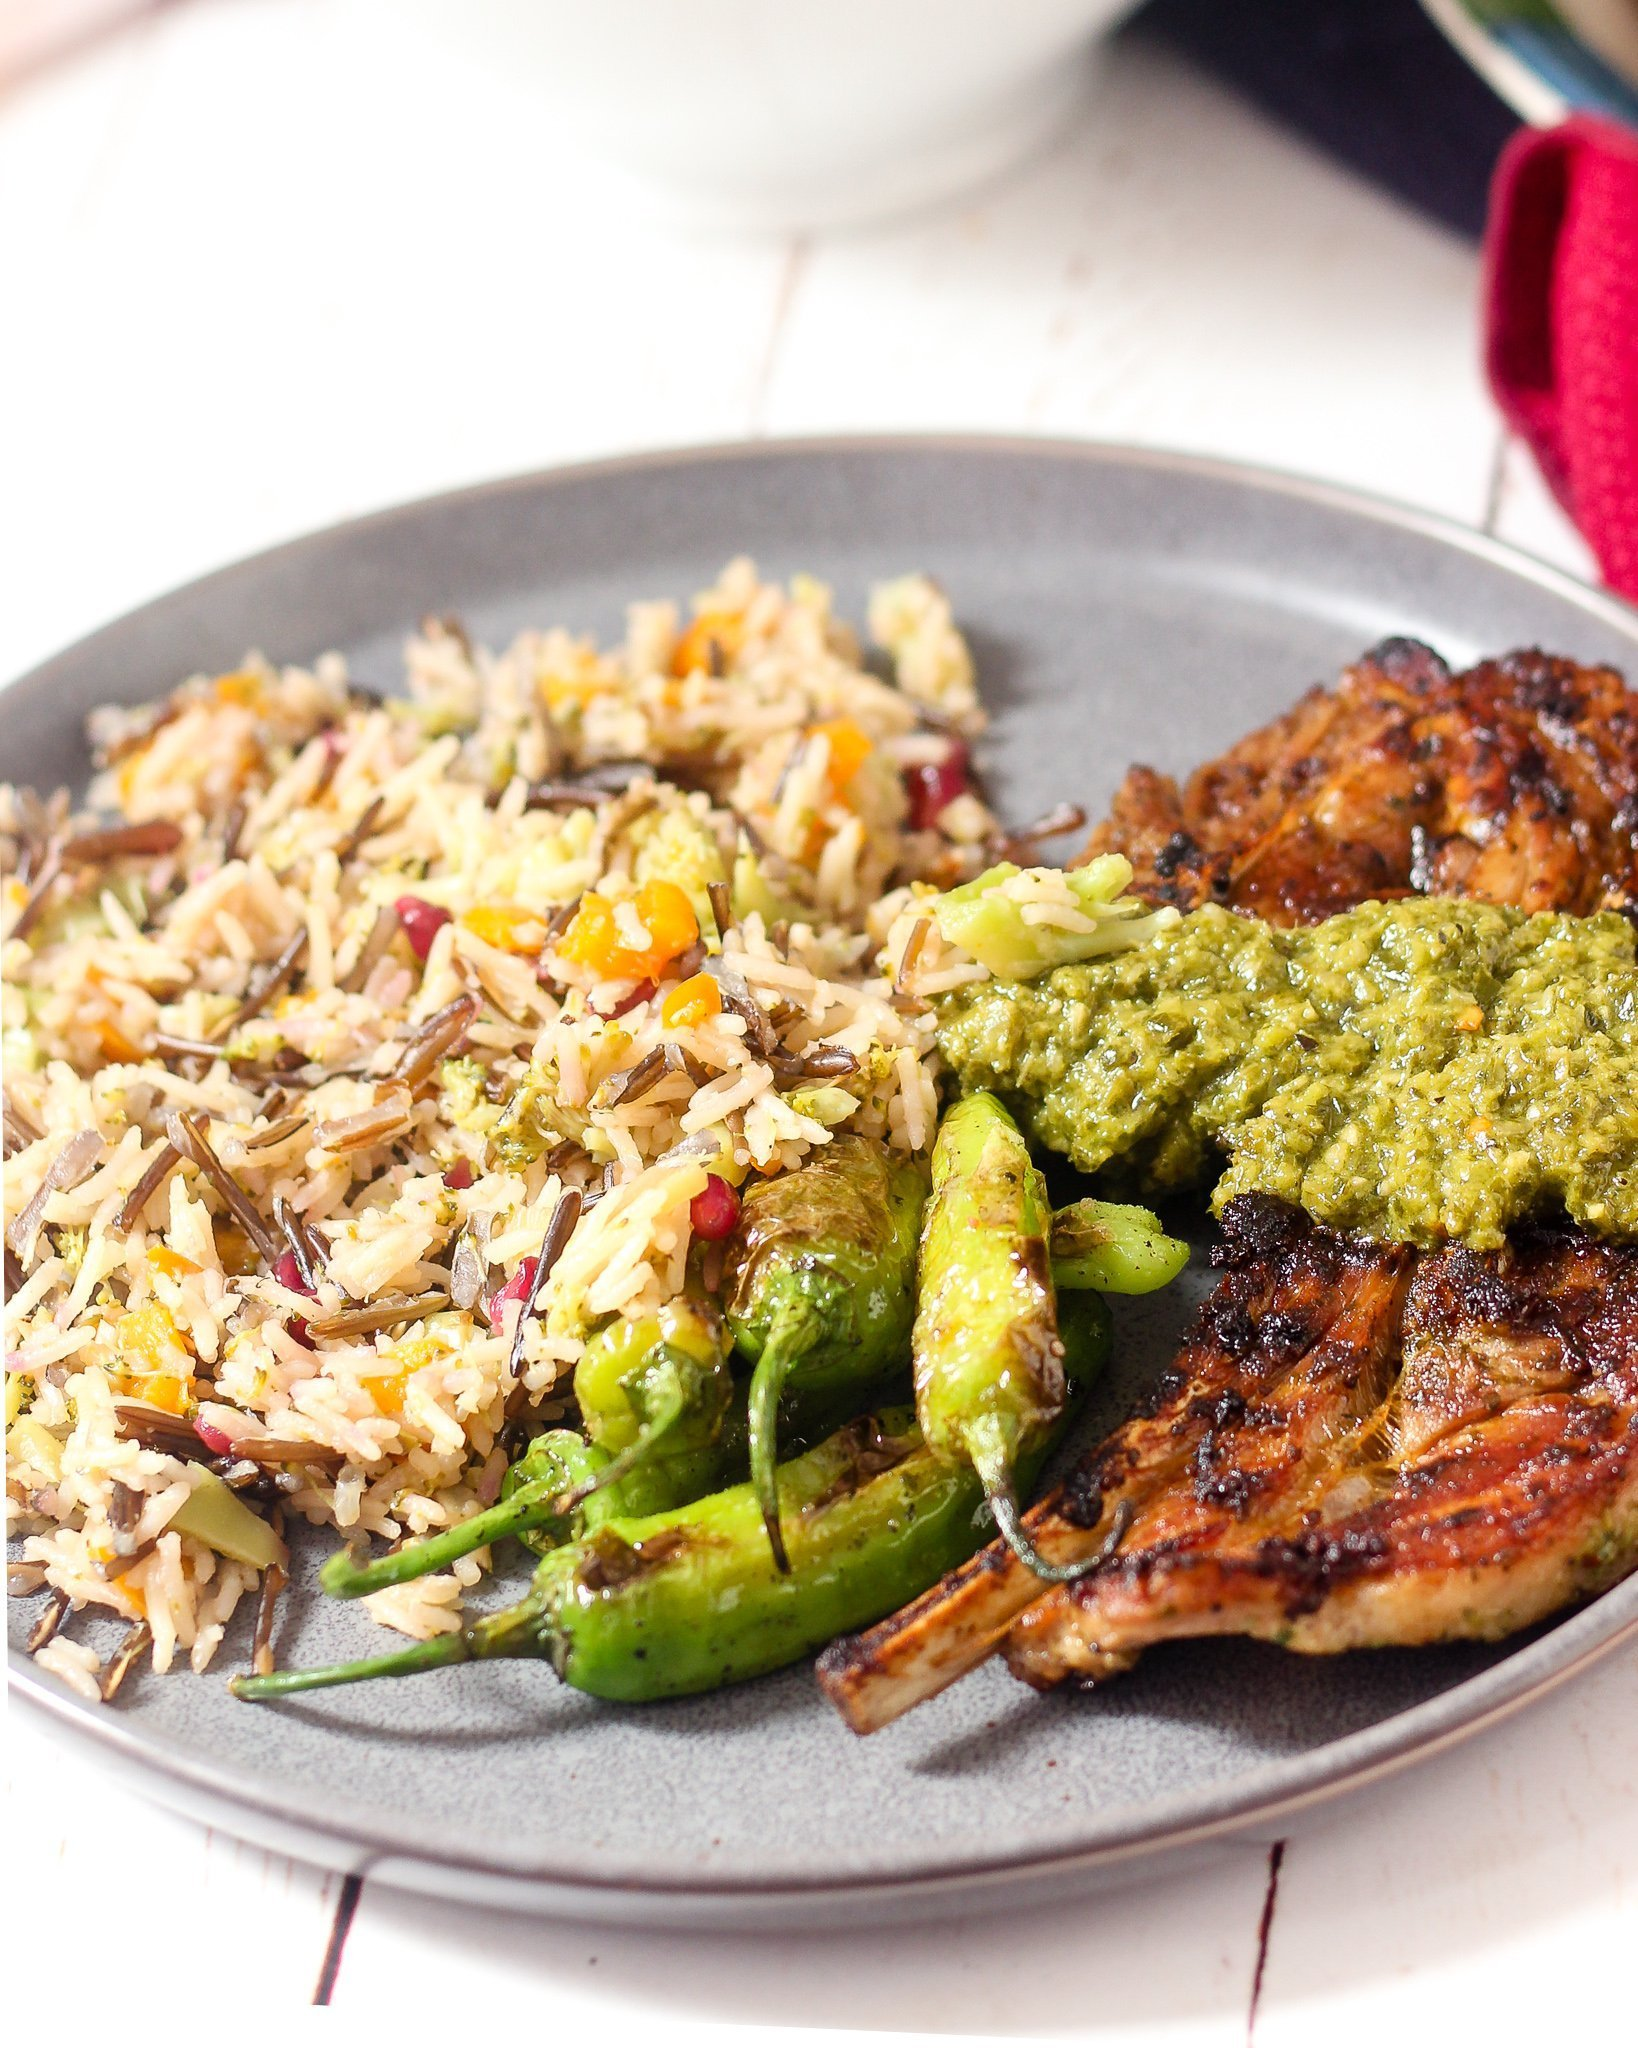 Chimichurri Lamb Dinner with Wild Rice Pilaf and Shishito Peppers